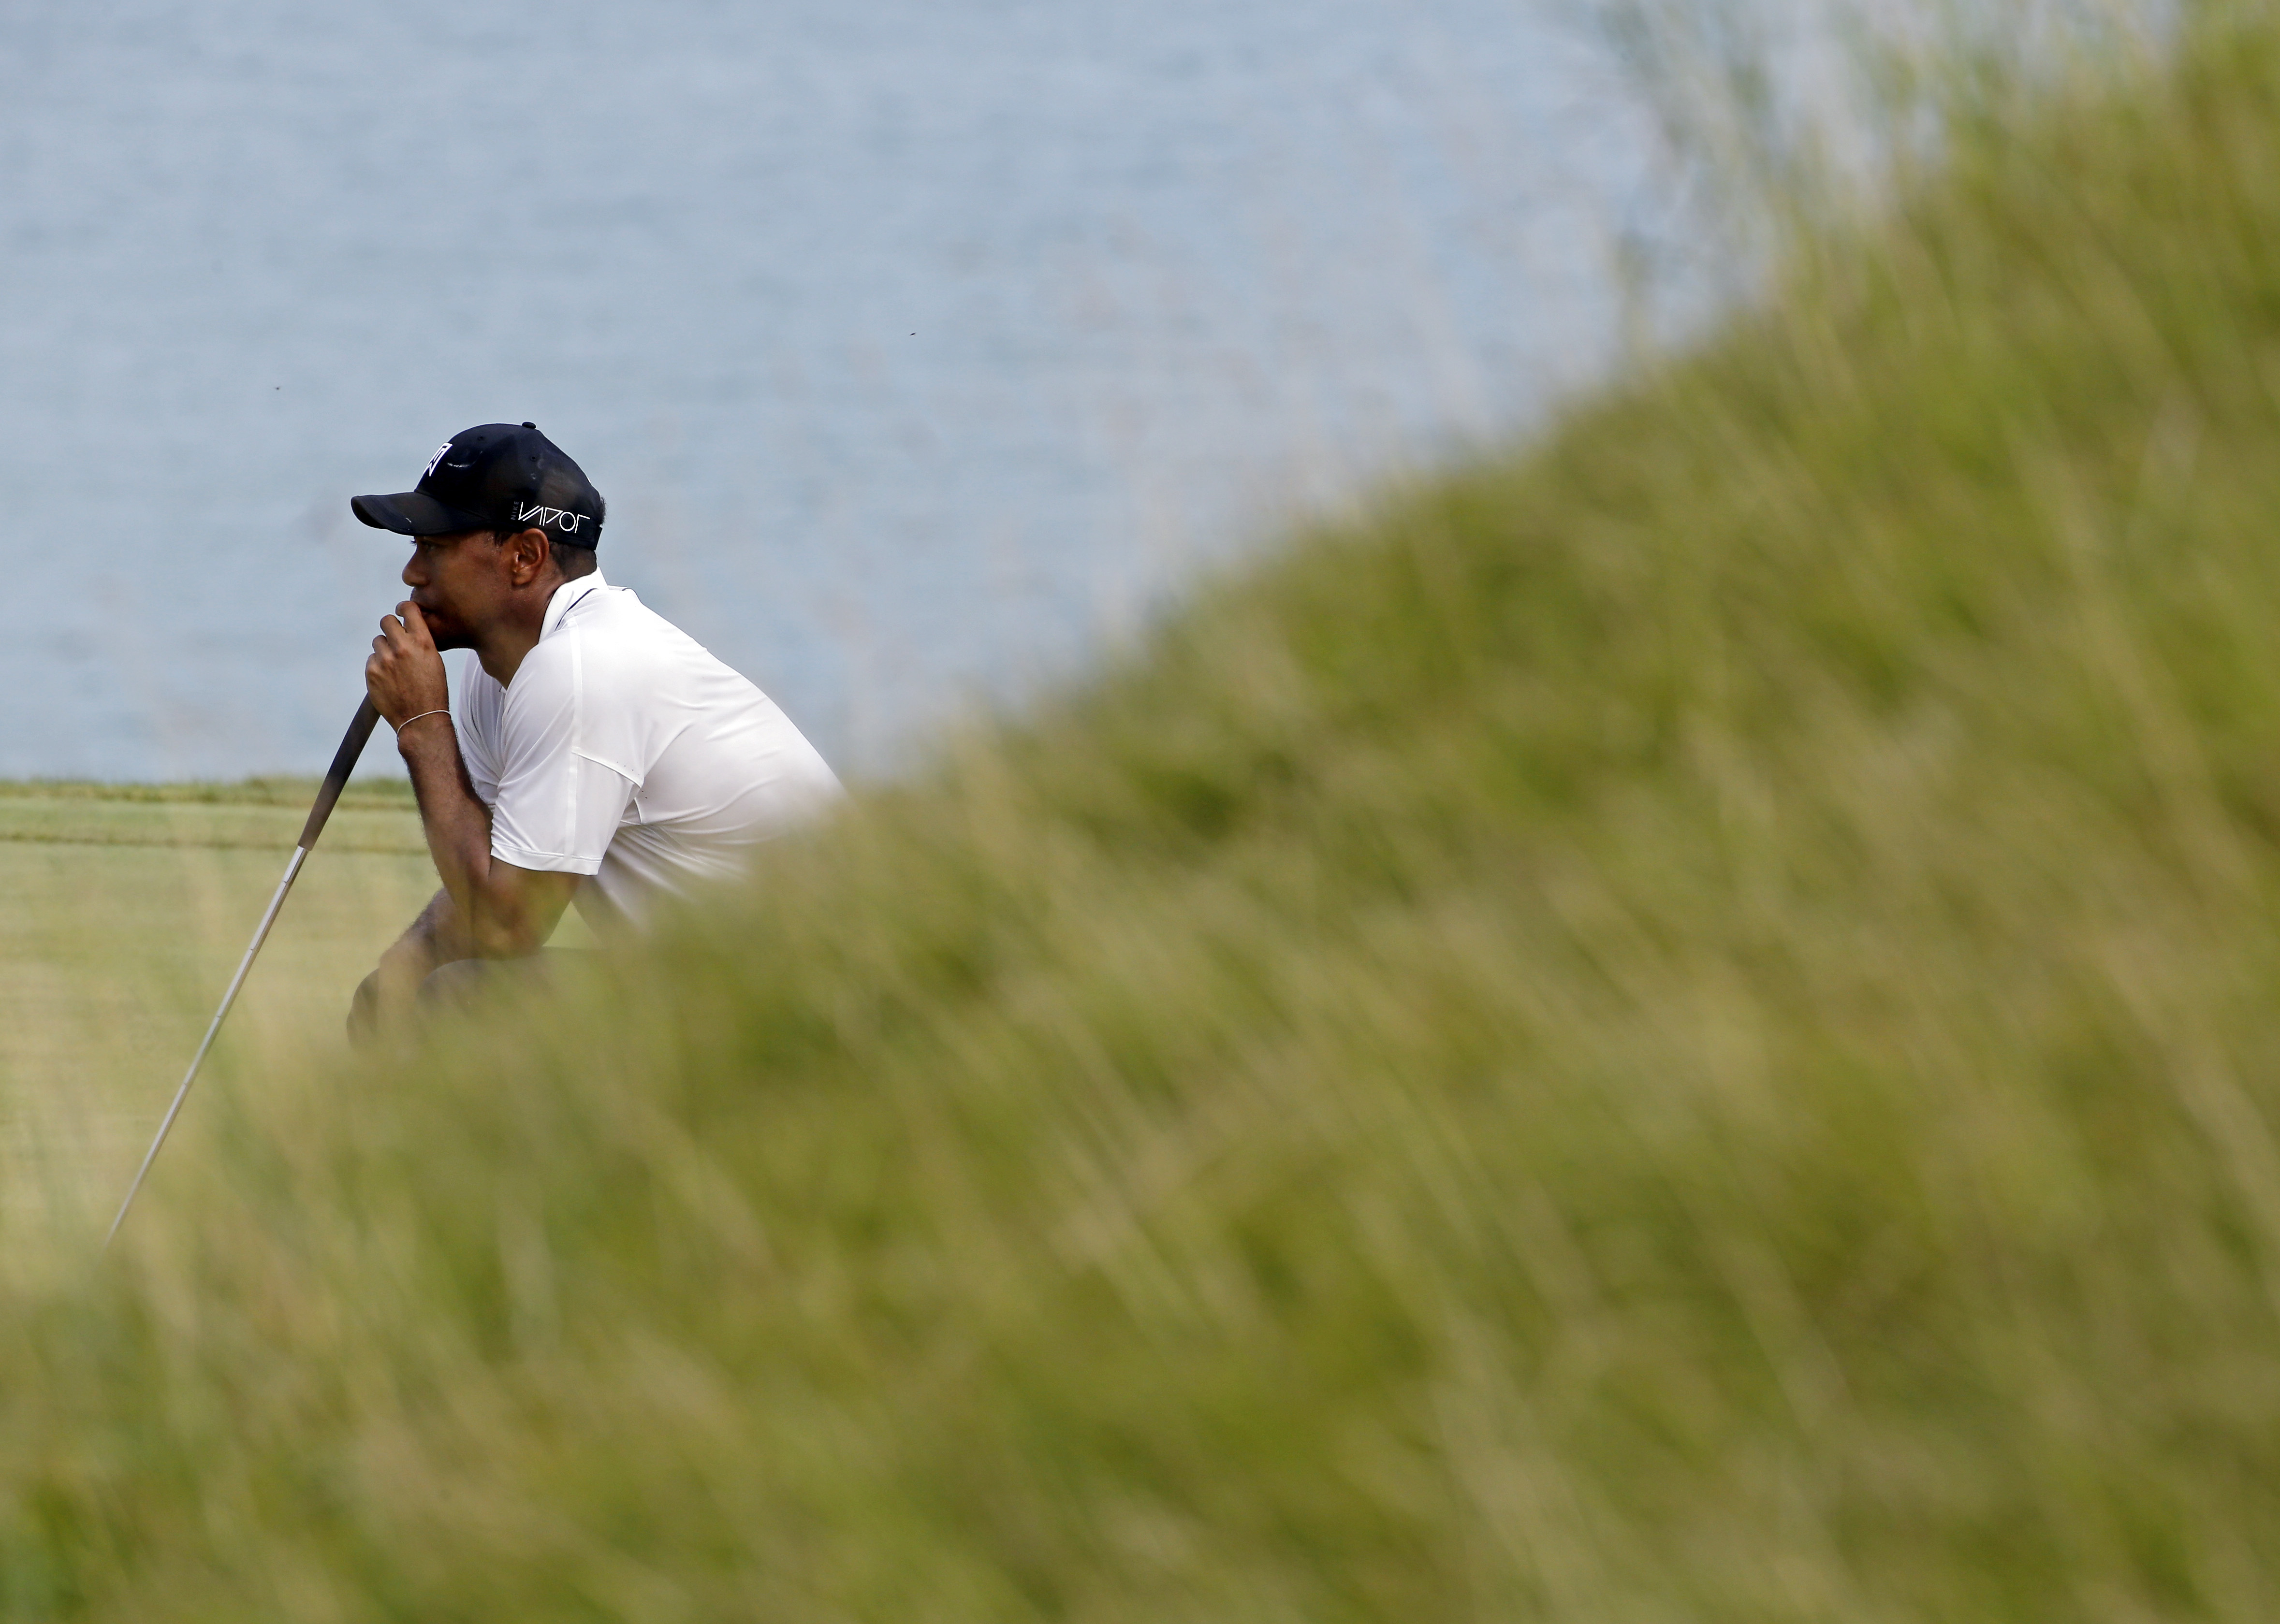 Tiger Woods waits to putt on the eighth hole during the second round of the PGA Championship golf tournament Friday, Aug. 14, 2015, at Whistling Straits in Haven, Wis. (AP Photo/Brynn Anderson)